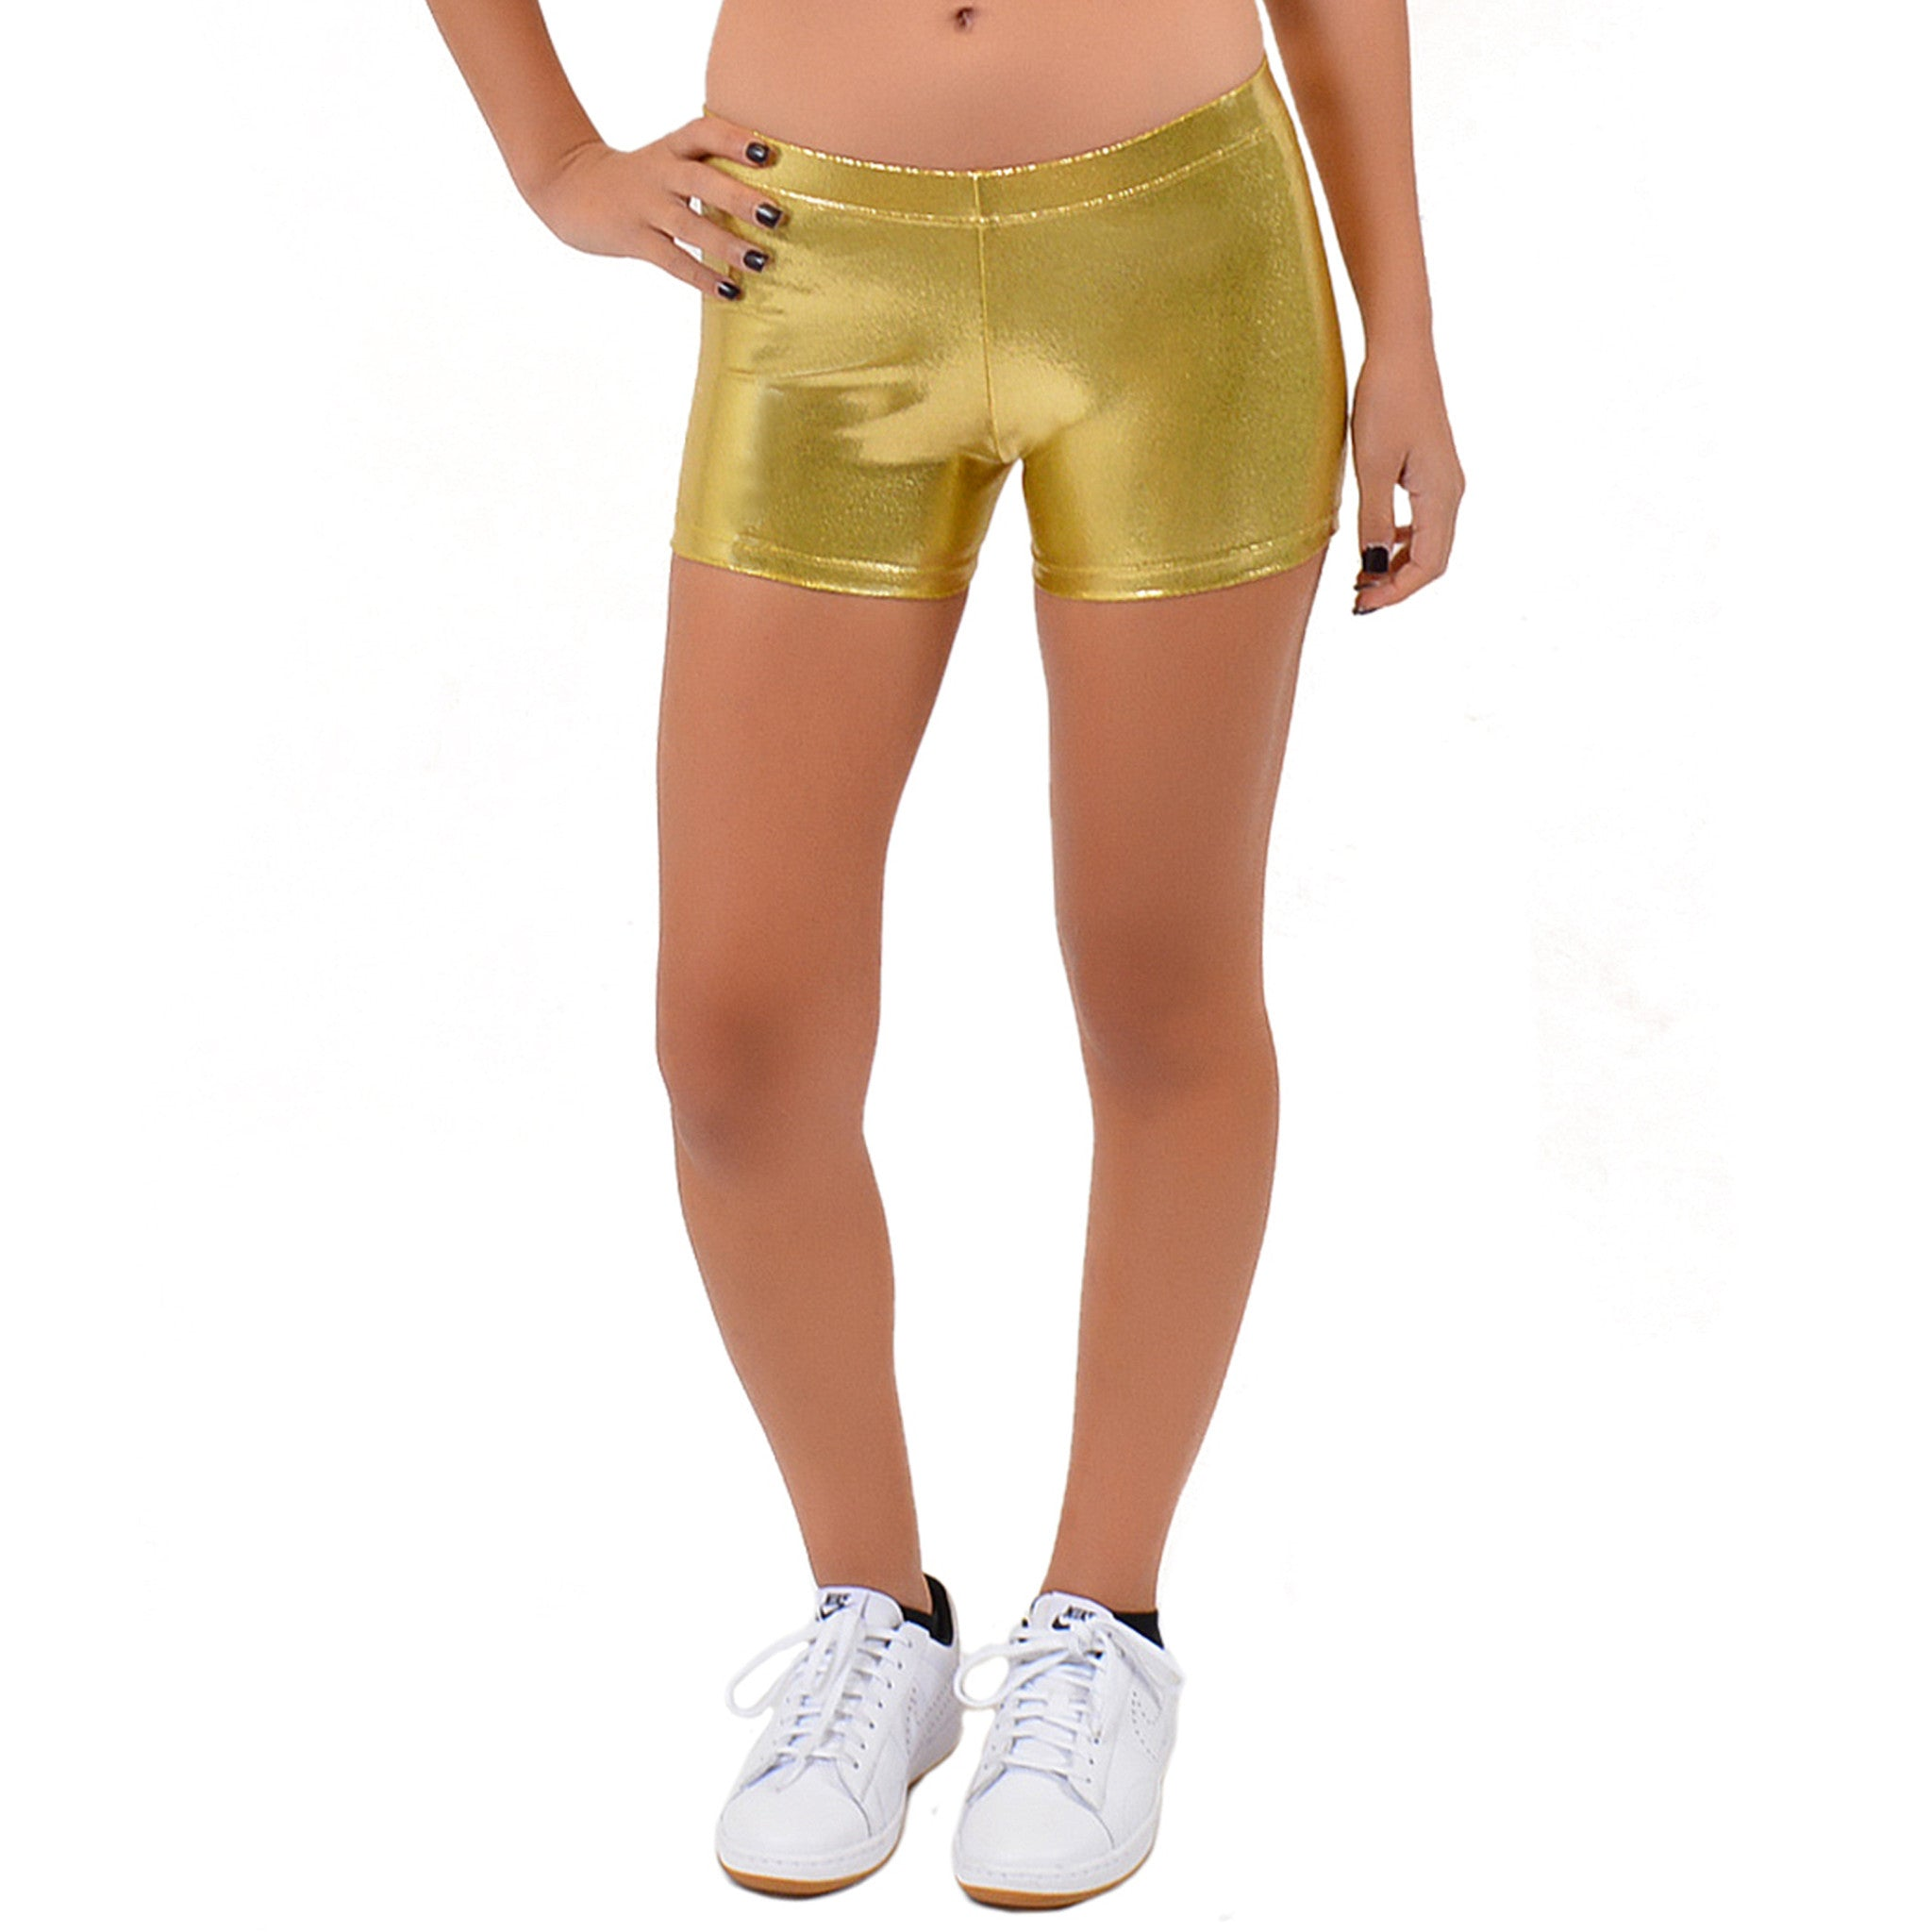 Teamwear Mystique Metallic Booty Shorts